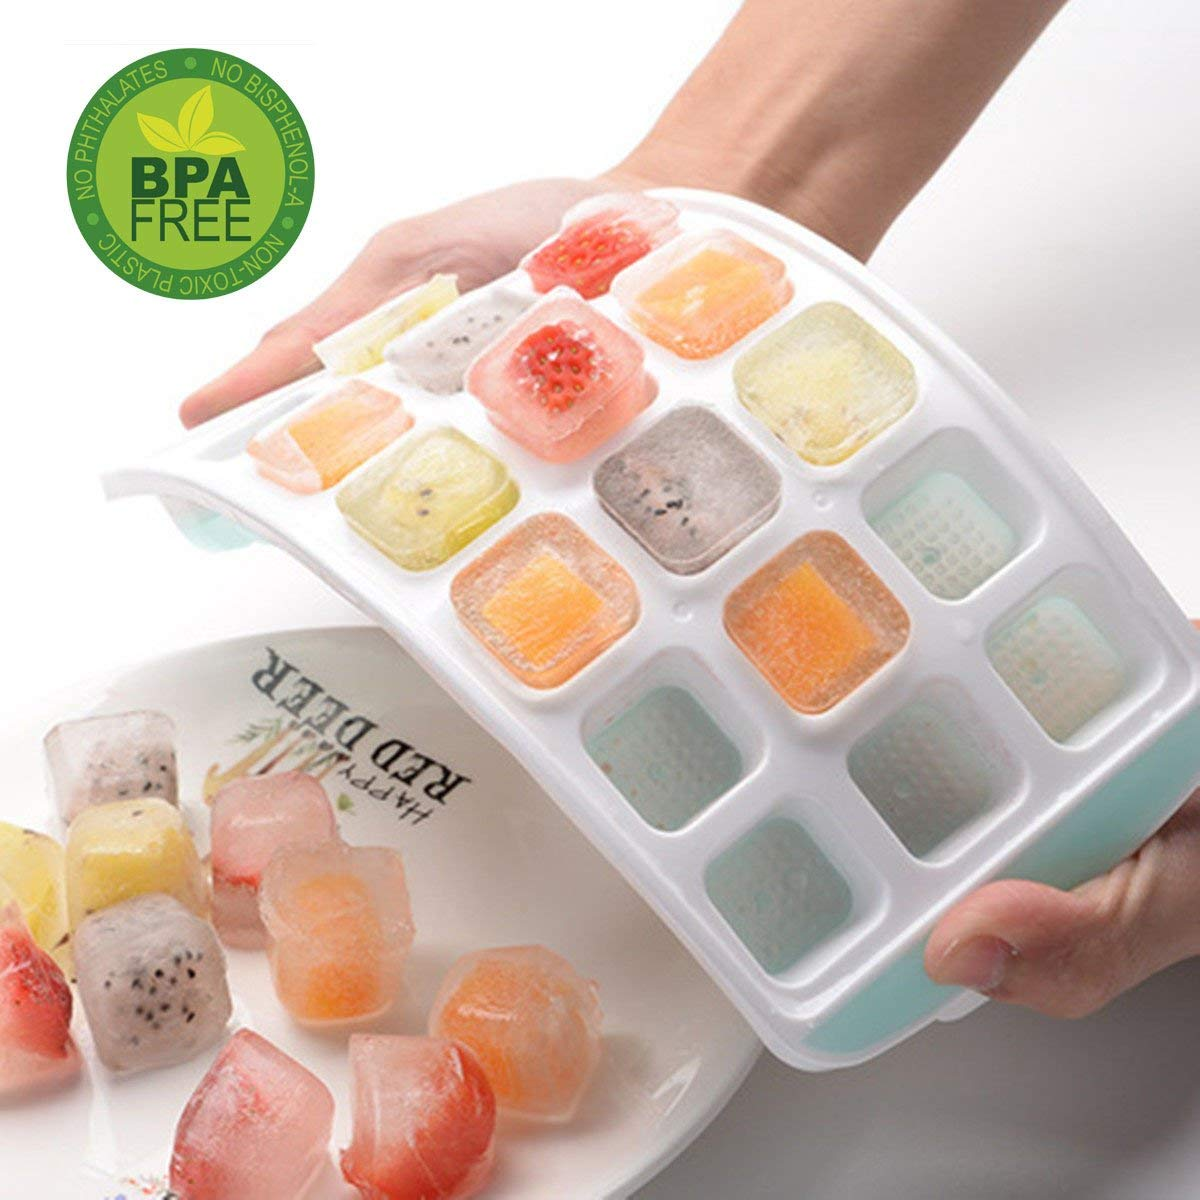 Ice Cube Trays, Ice Tray Easy-Release Silicone and Flexible 21 Ice Trays with Spill-Resistant Removable Lid, LFGB Certified and BPA Free, Stackable Durable and Dishwasher Safe